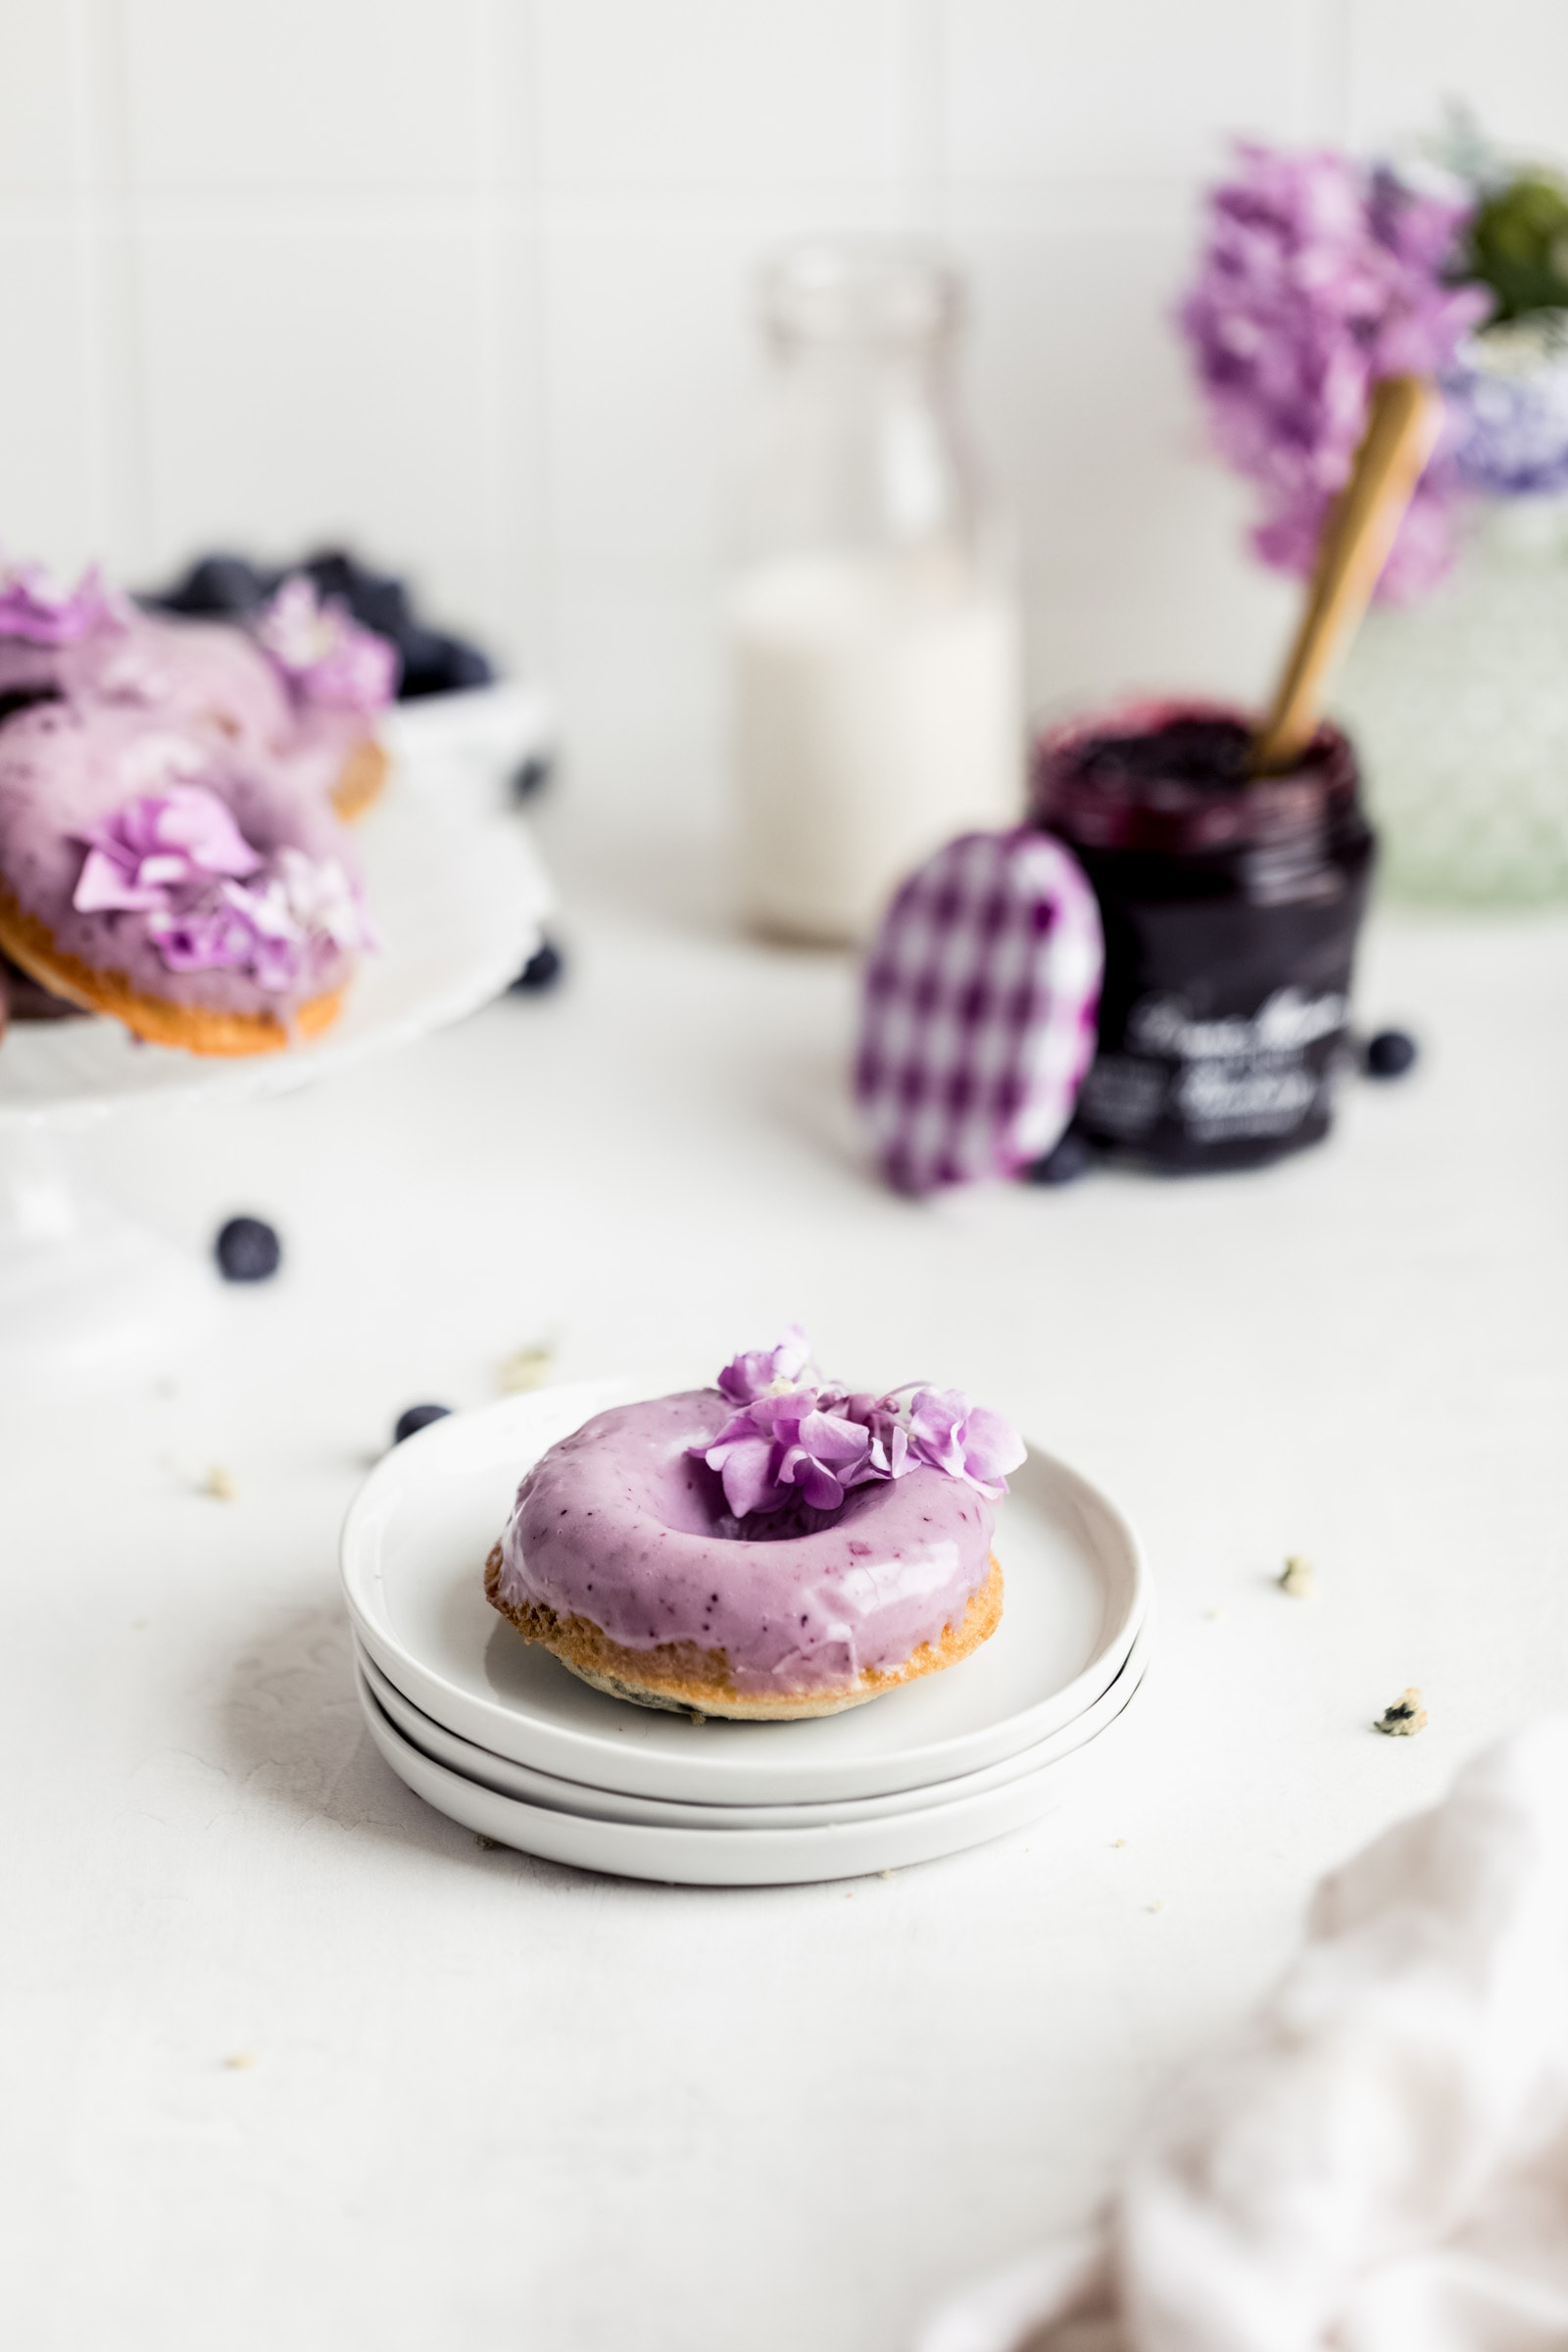 baked blueberry donut on a plate